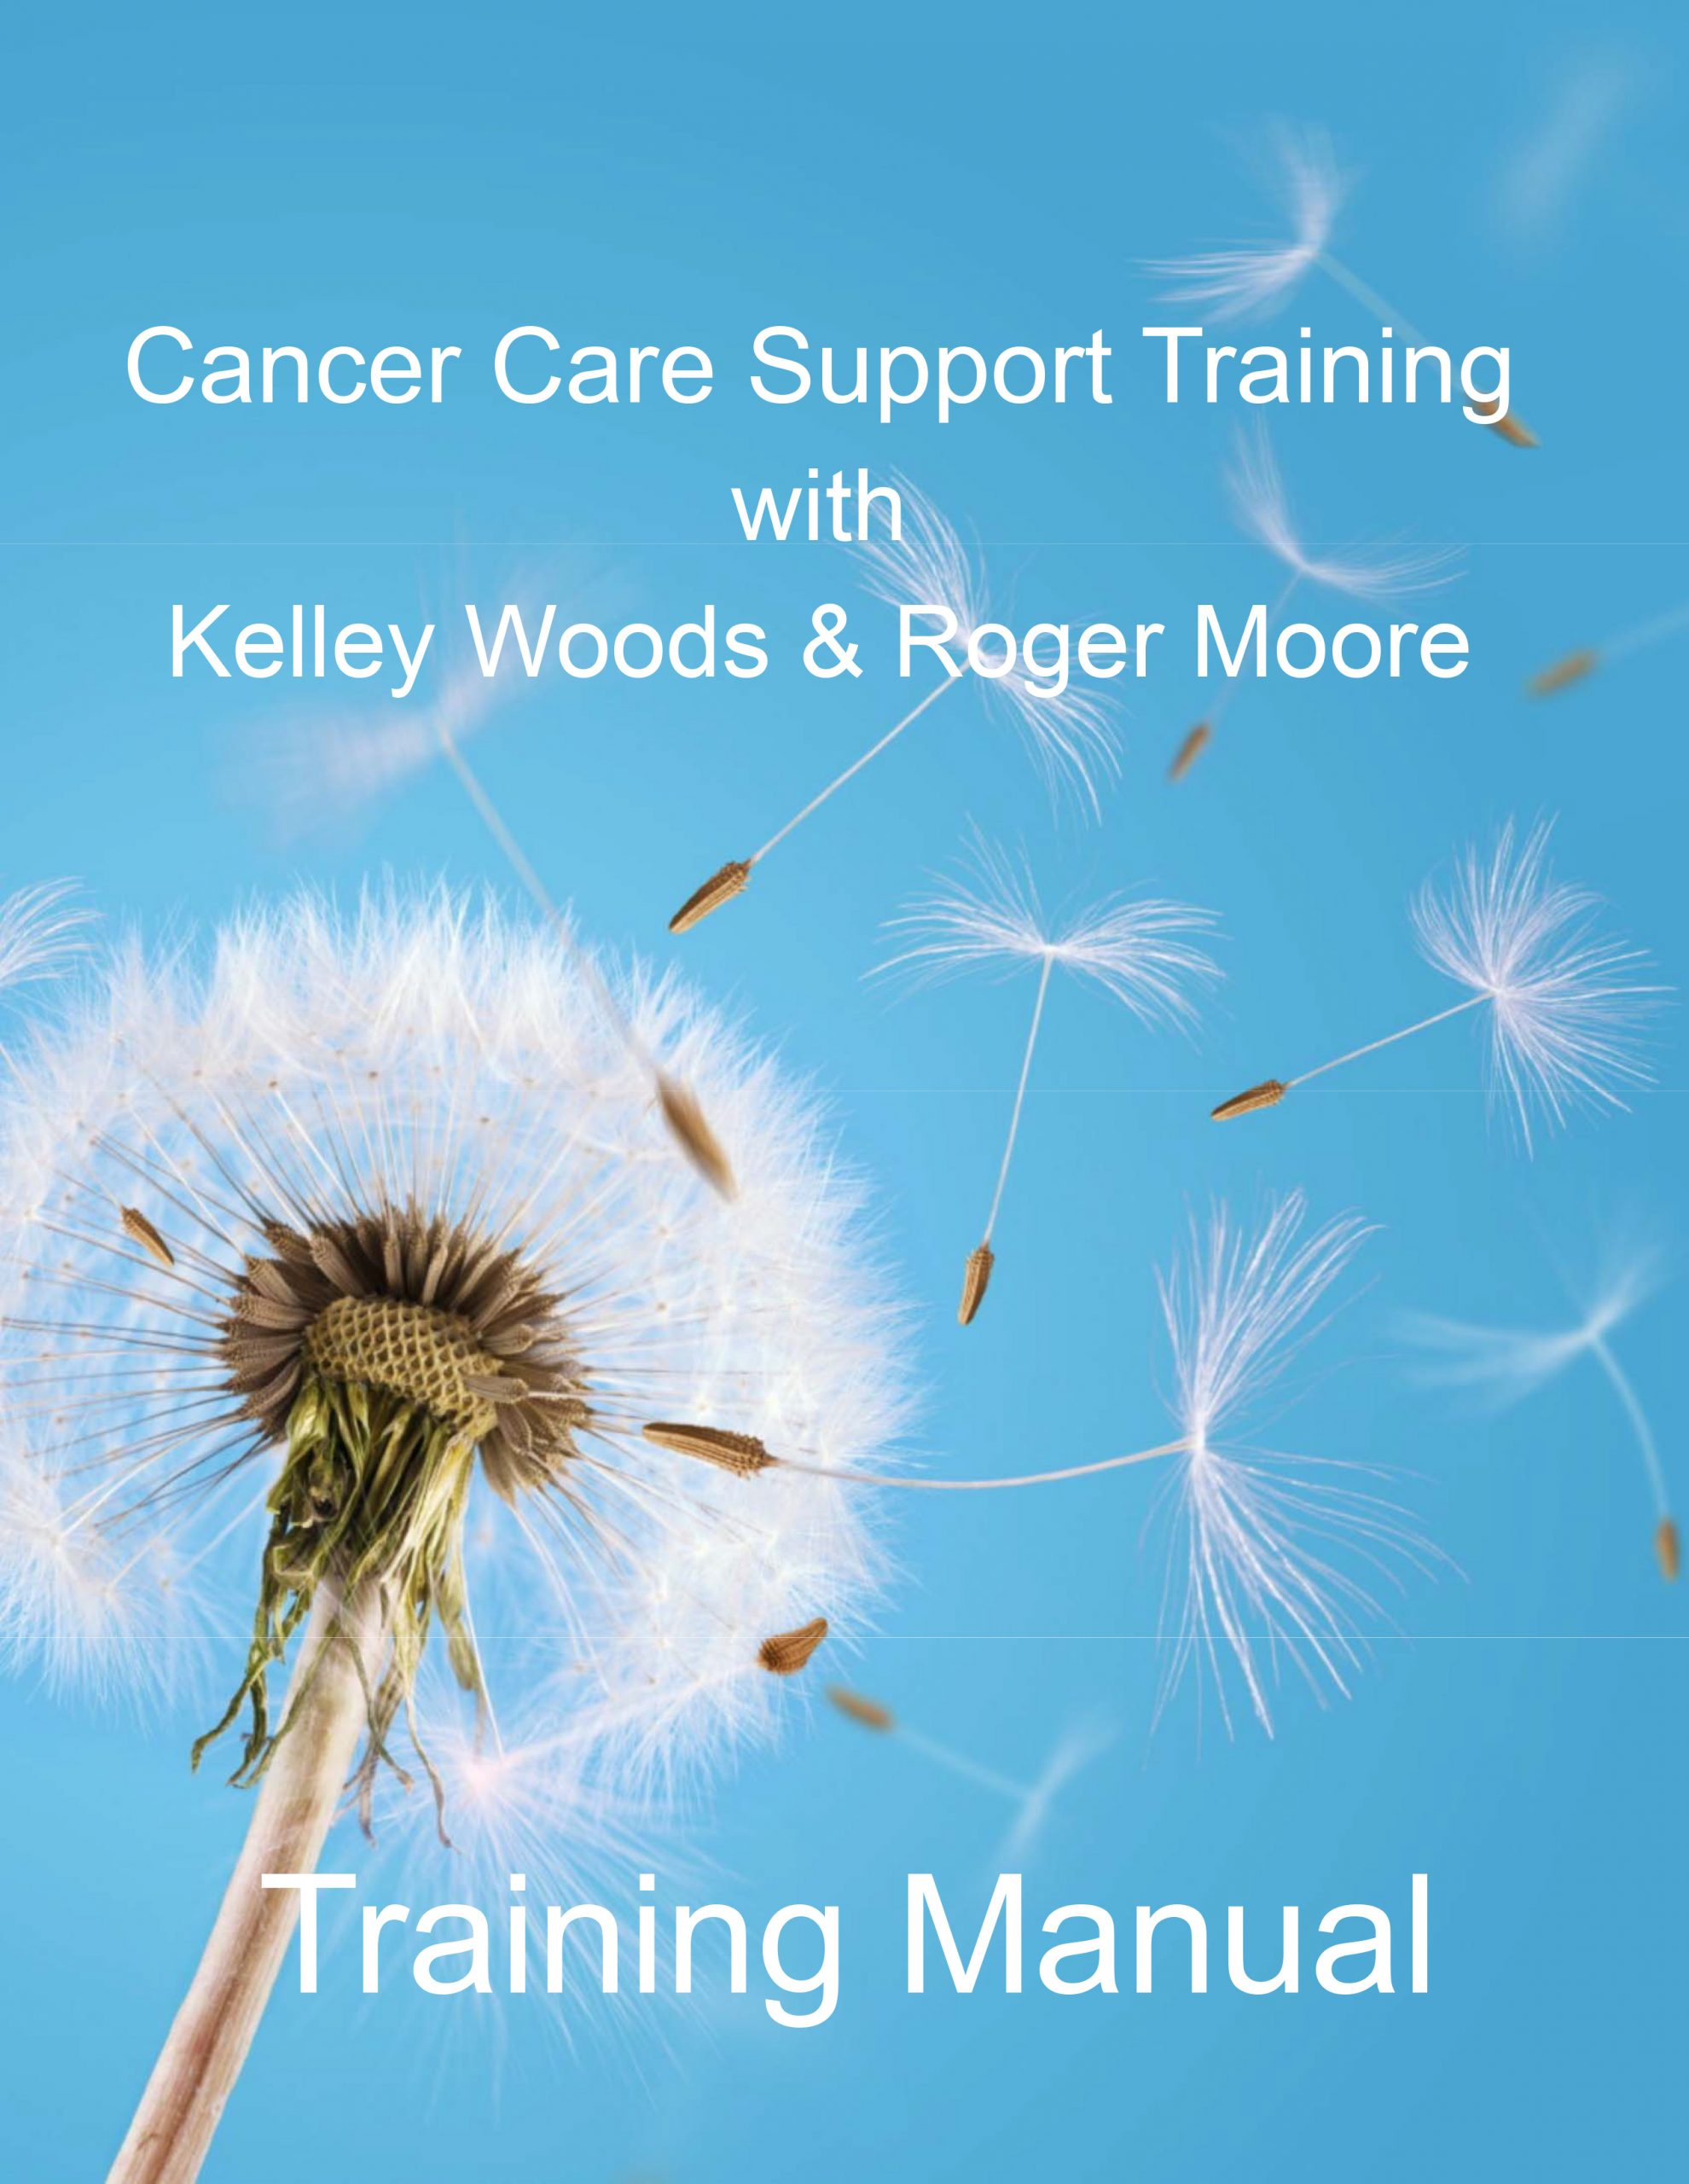 Cancer Care Support Training: Hypnotic Approaches that Help Training Manual